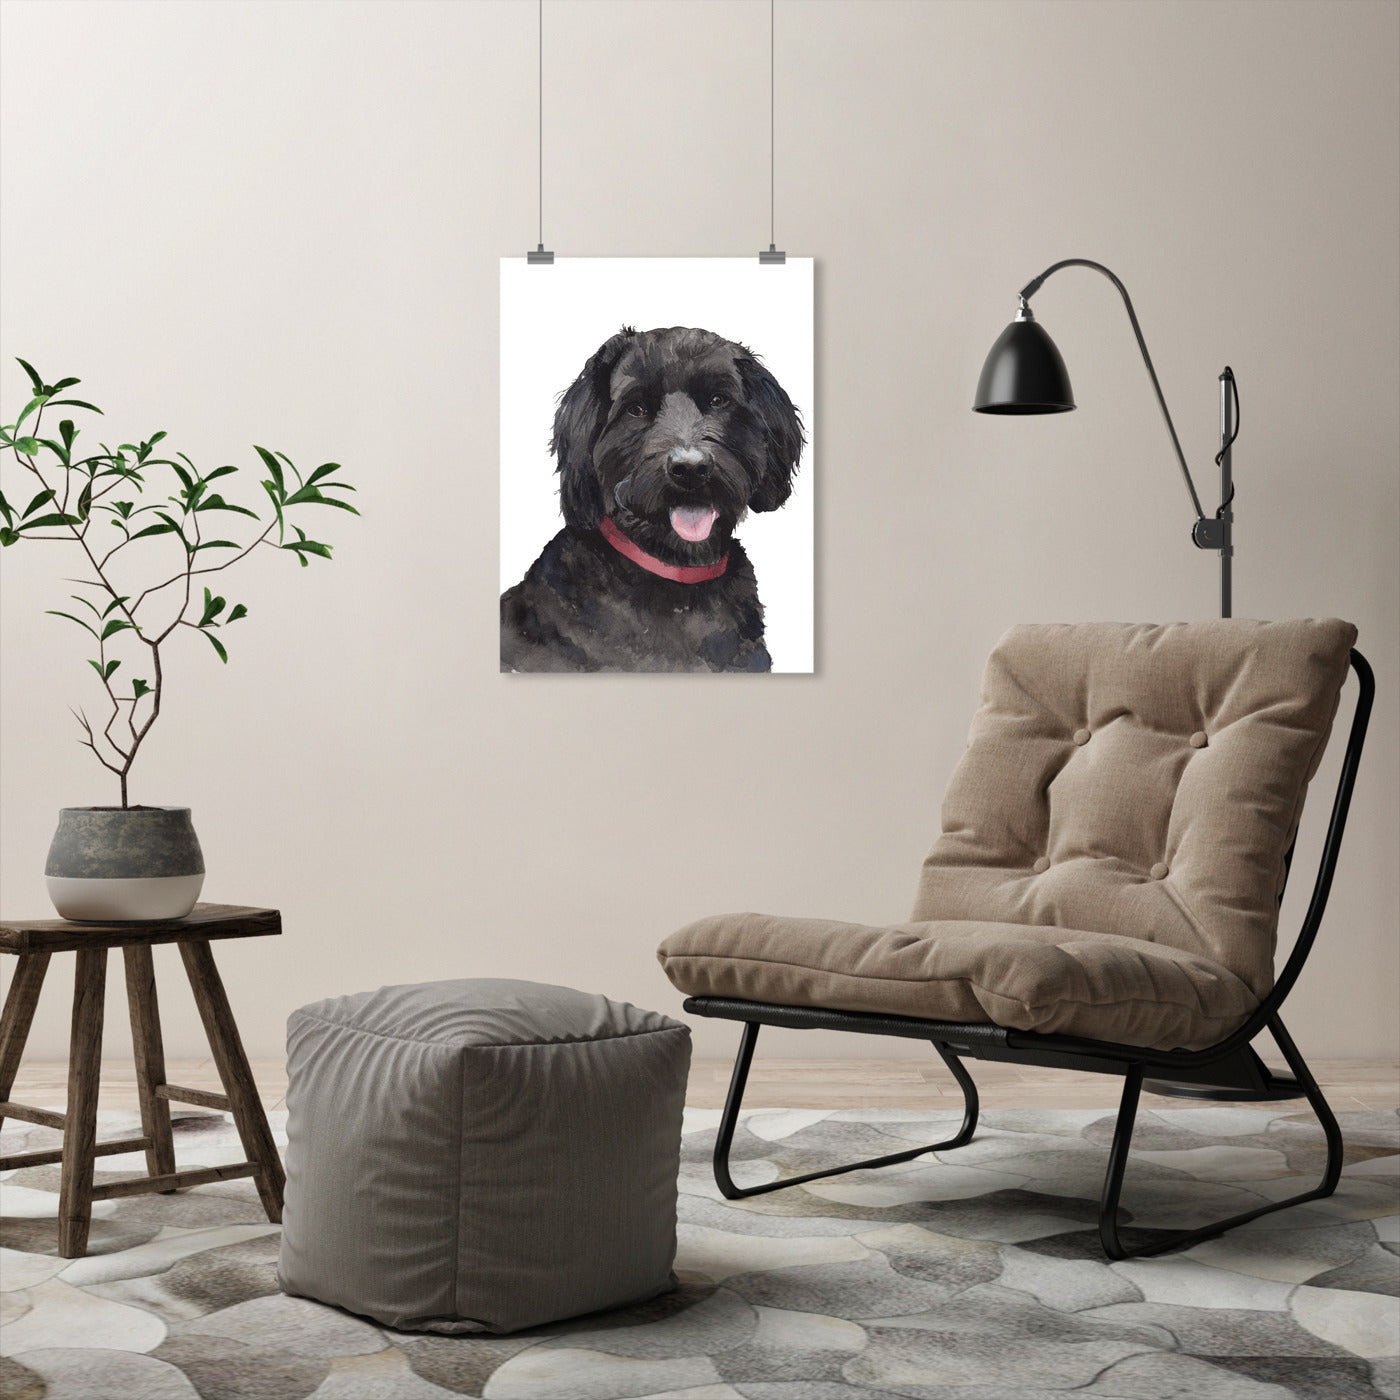 Molly Pet Portrait by Cami Monet - Art Print - Americanflat